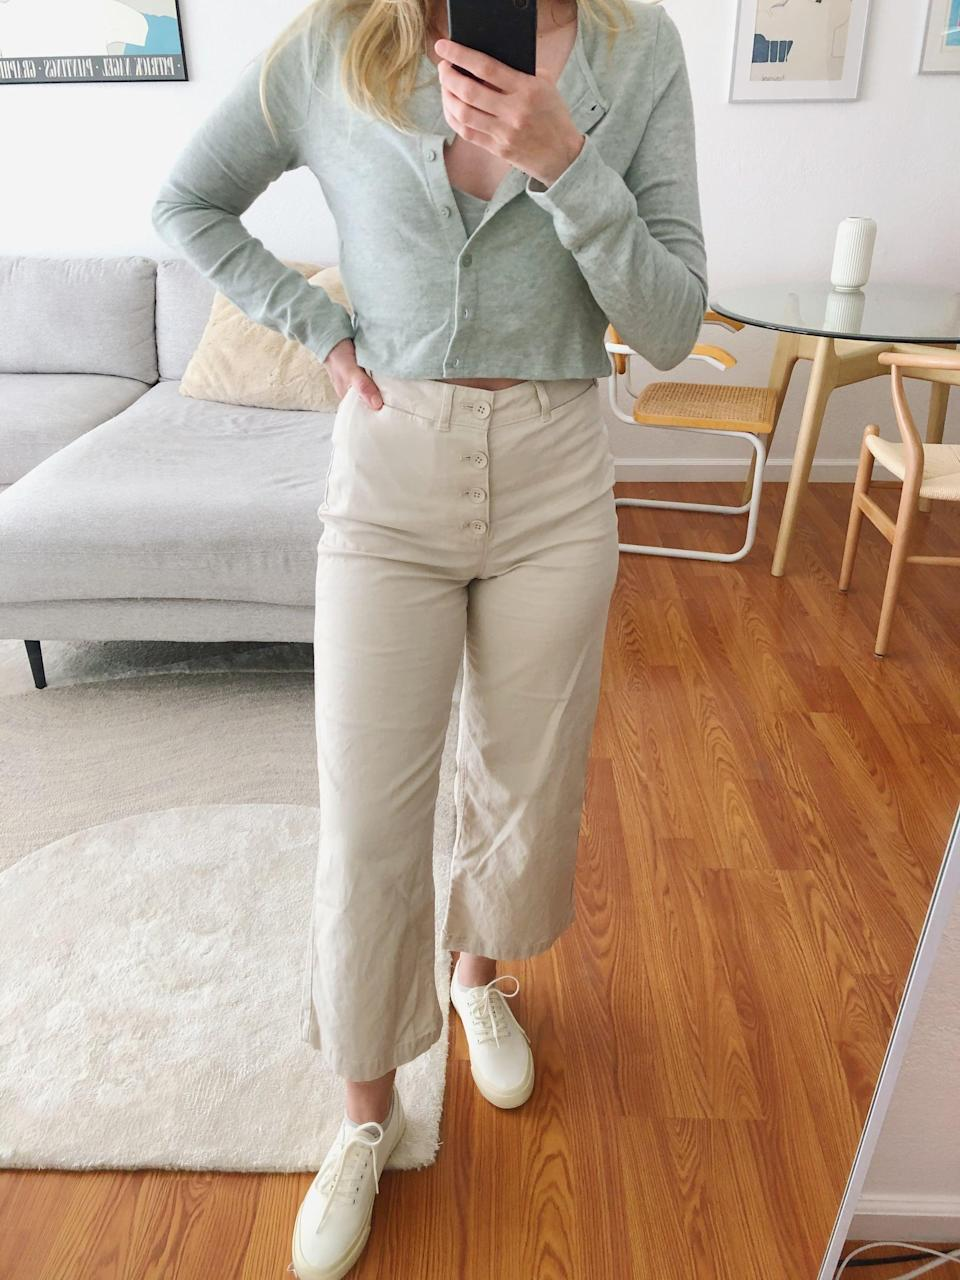 """<p><strong>Item</strong>: <span>Old Navy Wide-Leg Pants </span> (35, originally $40) </p> <p><strong>What our editor said:</strong> """"No matter how I style them, I find myself wanting to wear them again and again. The flattering silhouette not only looks good, but they feel good, too. I chose them in a beige shade, because I love wearing neutrals, but they come in two other fun options as well."""" - KJ If you want to read more, here is the <a href=""""https://www.popsugar.com/fashion/comfortable-wide-leg-pants-from-old-navy-editor-review-47802124"""" class=""""link rapid-noclick-resp"""" rel=""""nofollow noopener"""" target=""""_blank"""" data-ylk=""""slk:complete review"""">complete review</a>.</p>"""